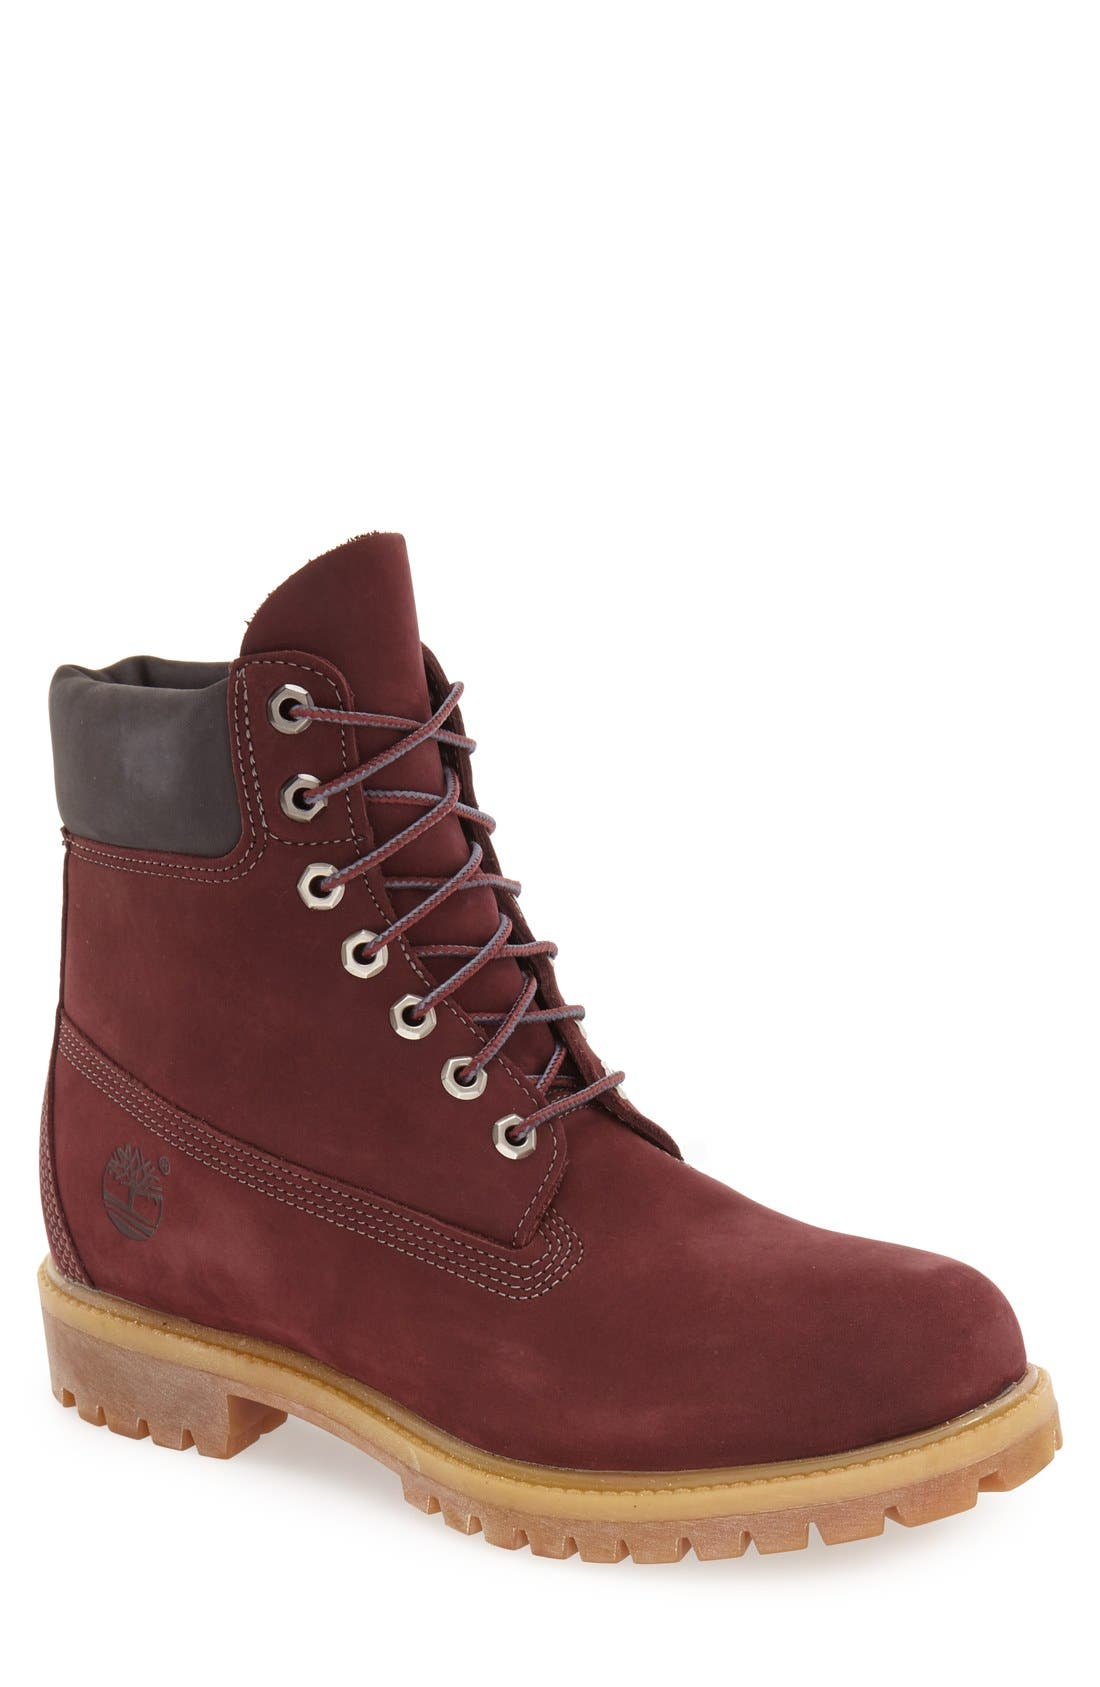 Main Image - Timberland 'Autumn Mashup' Waterproof Boot (Men)